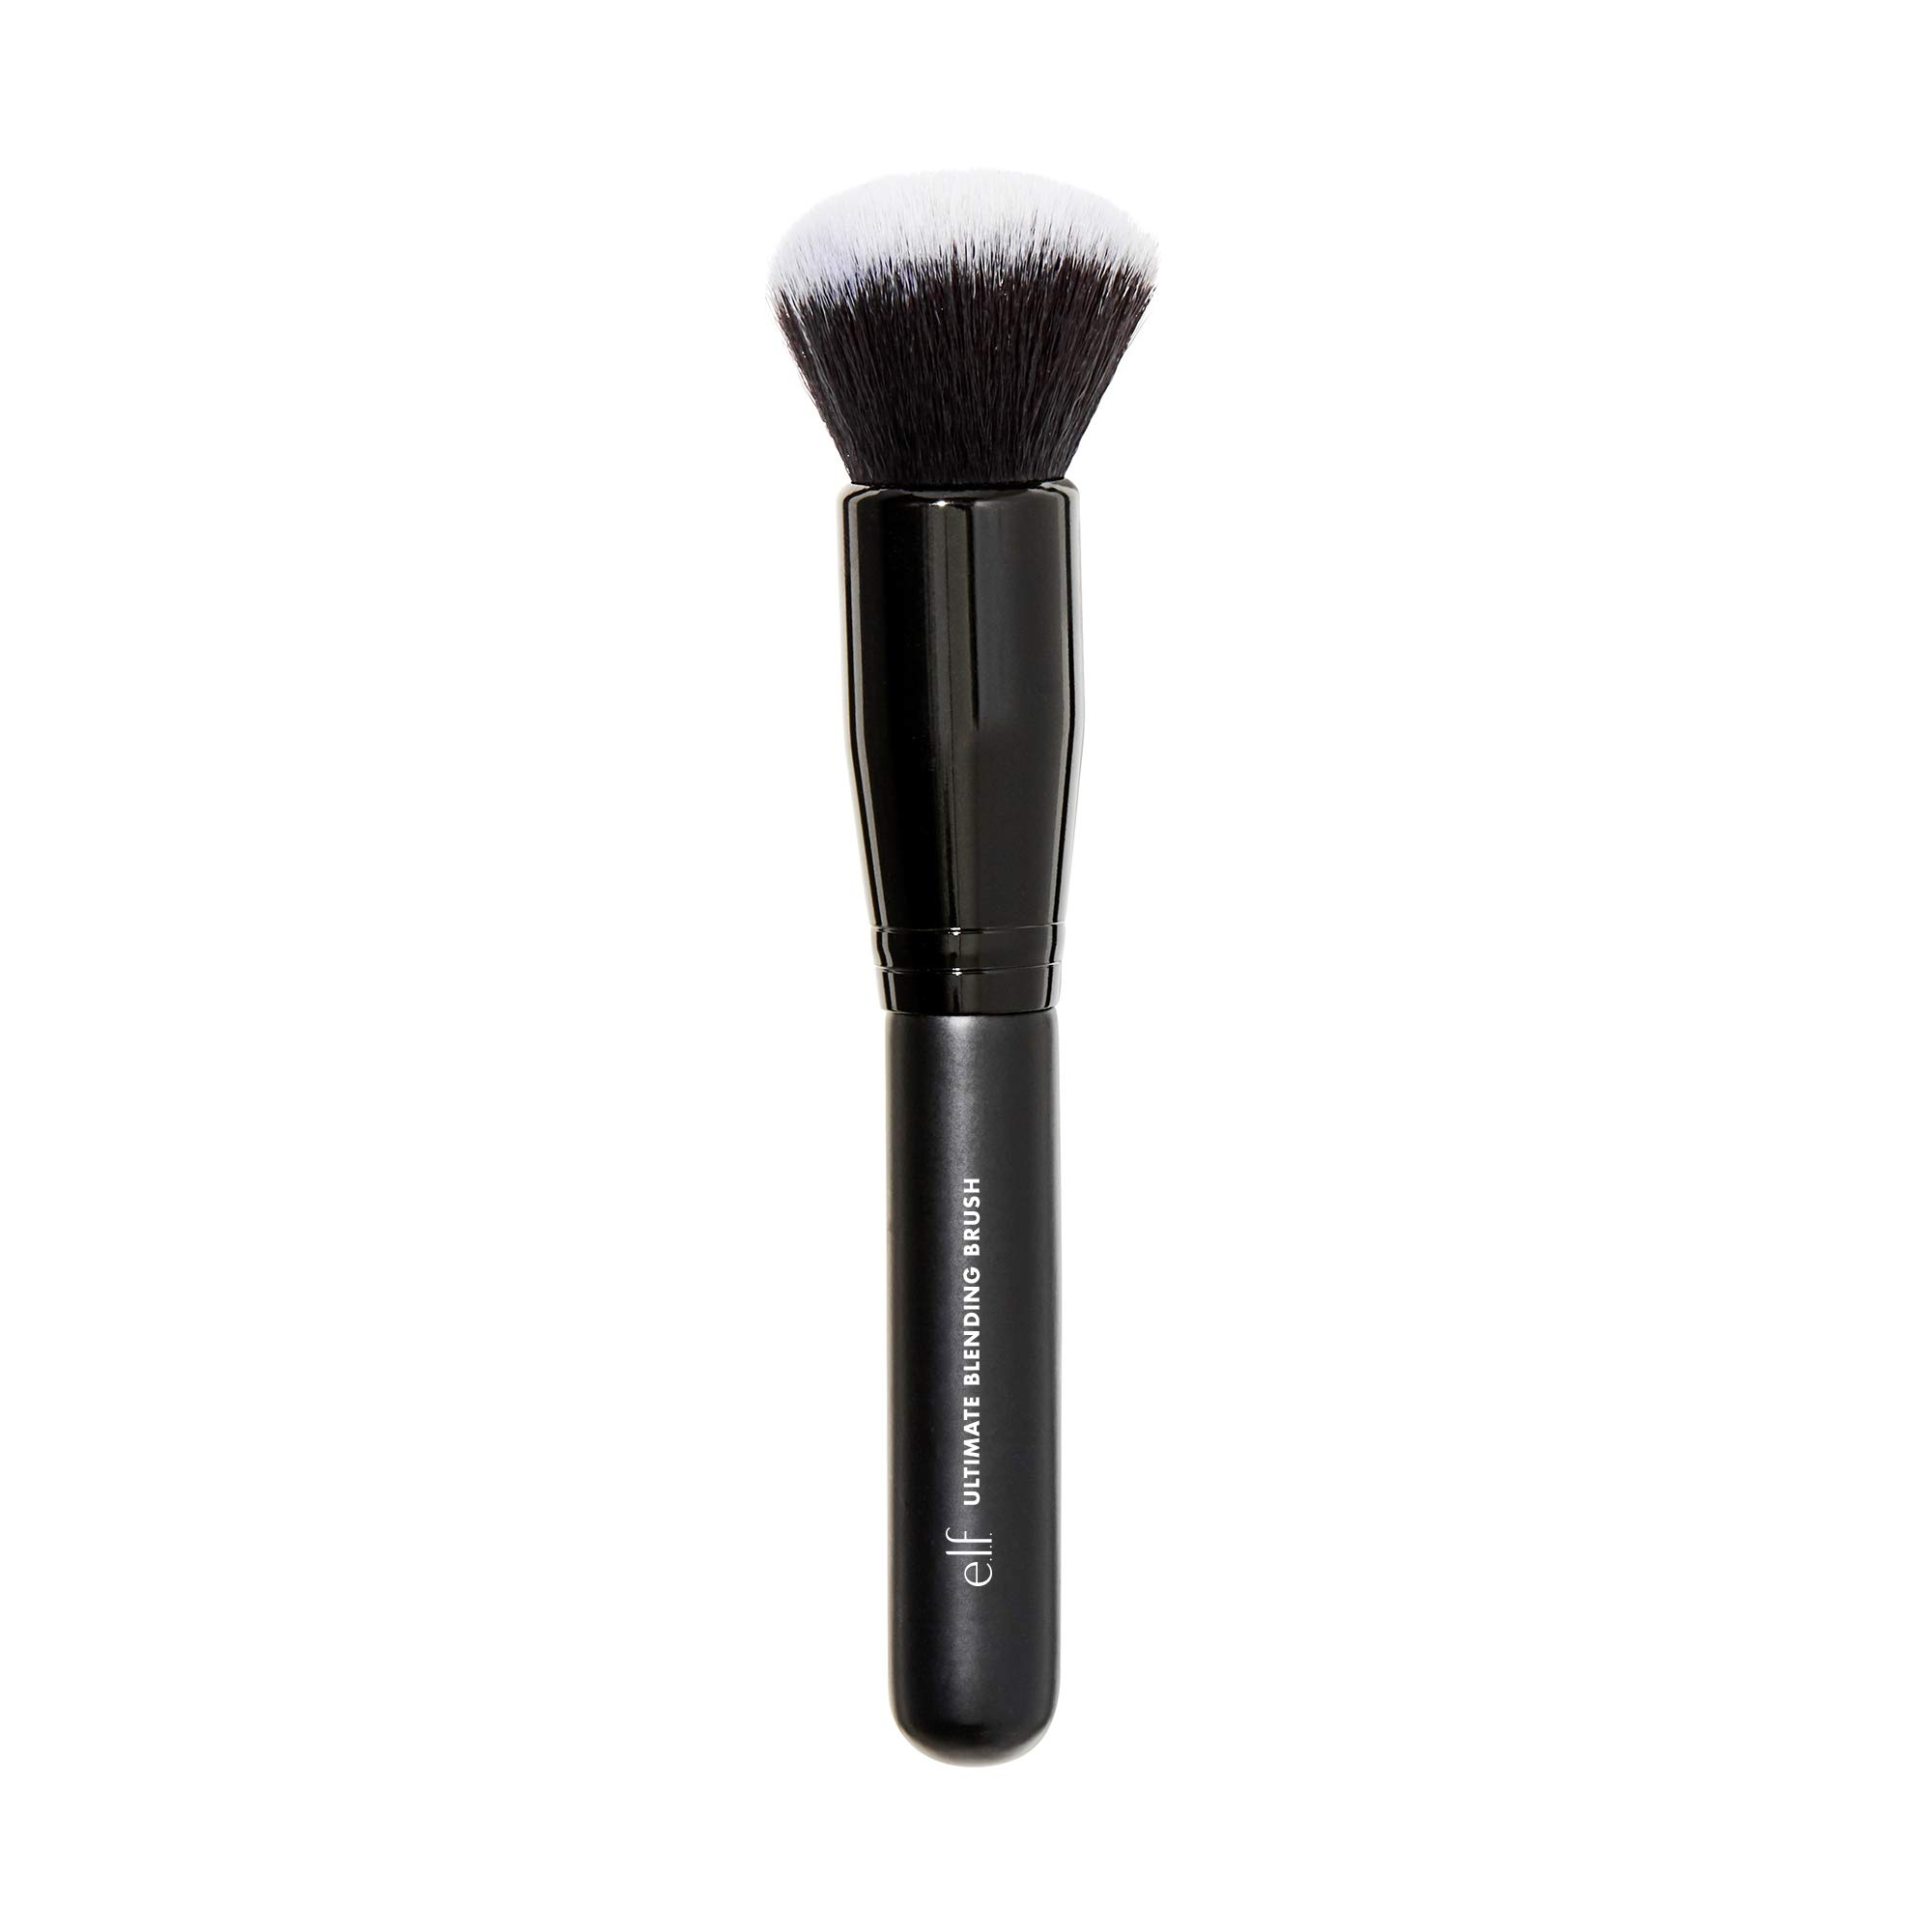 e.l.f., Ultimate Blending Brush, Soft, Synthetic, Large, Dome-Shaped, Dense, Contours Face for Seamless, Even Coverage, Sculpts, Easy To Clean, Easy To Use, 0.16 Oz